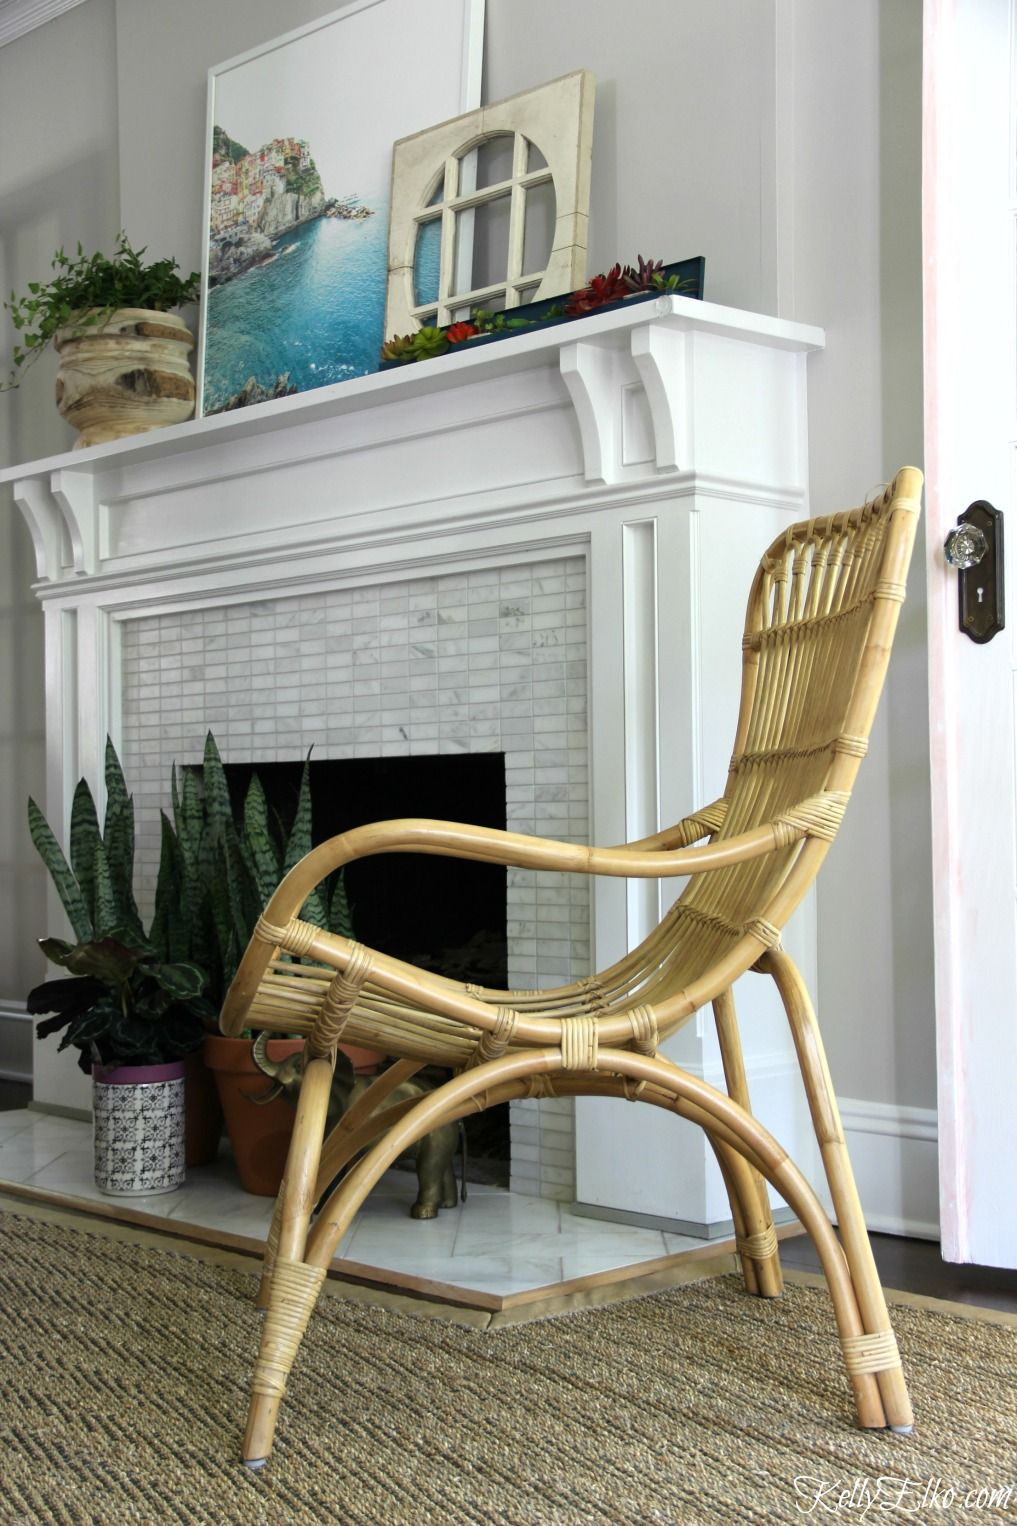 ikea casual chairs club swivel base color lovers my colorful living room makeover homegoods love this outdoor rattan chair from used inside adds so much texture and a feel to the tour eclectic